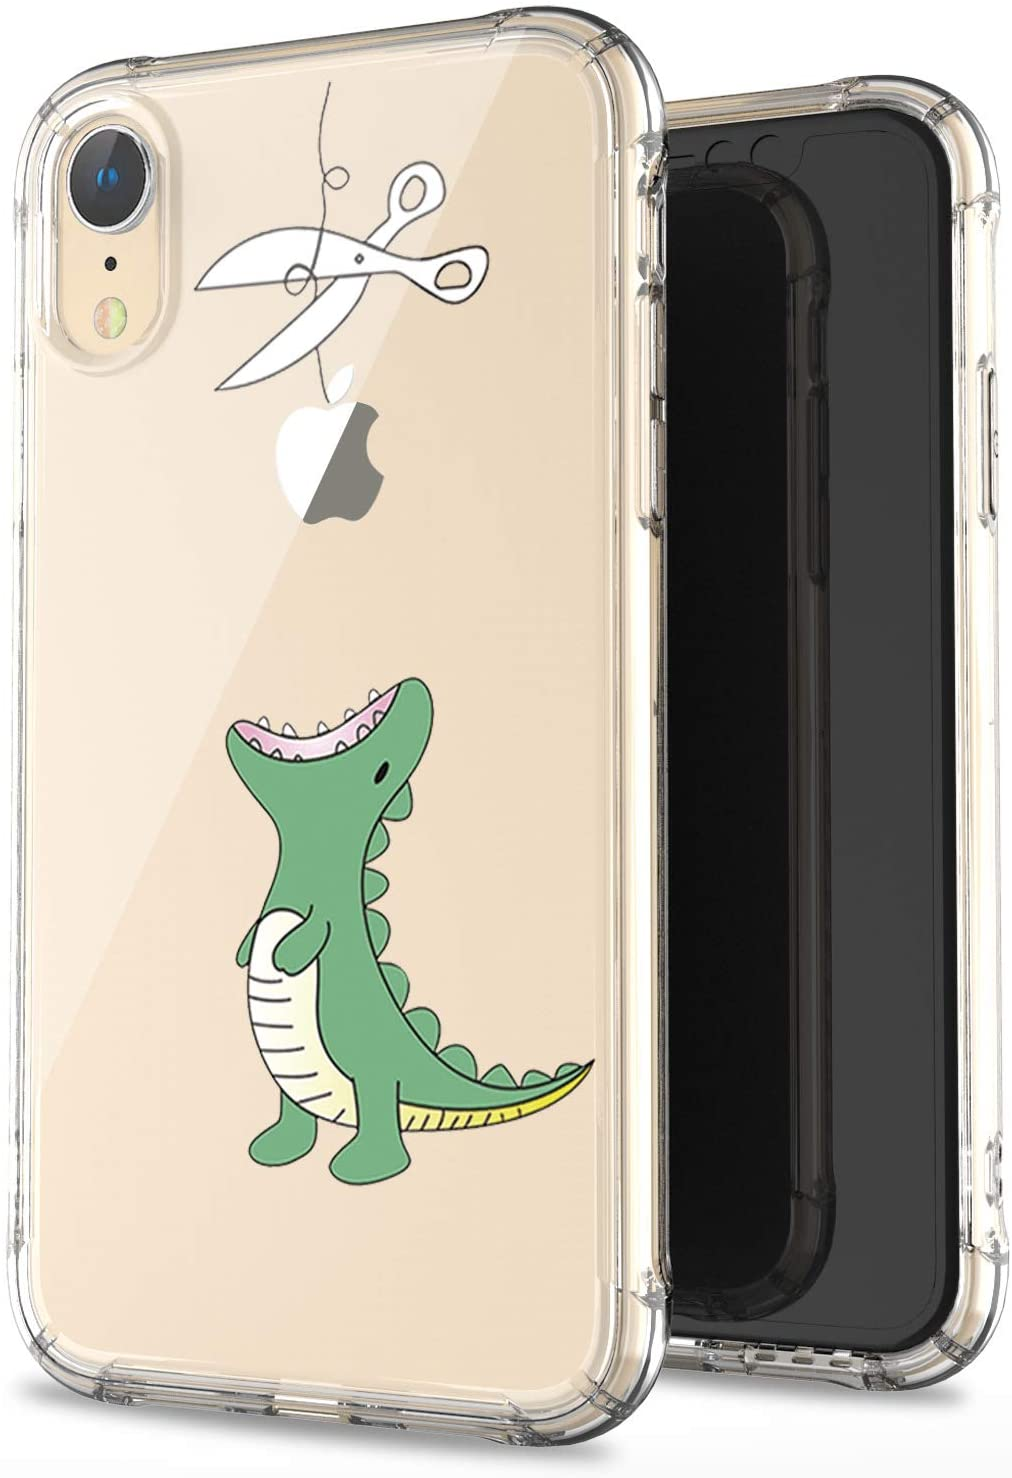 JAHOLAN Compatible iPhone XR Case Clear Cute Amusing Whimsical Design Green Hungry Dinosaur Flexible Bumper TPU Soft Rubber Silicone Cover Phone Case for iPhone XR 2018 6.1 inch